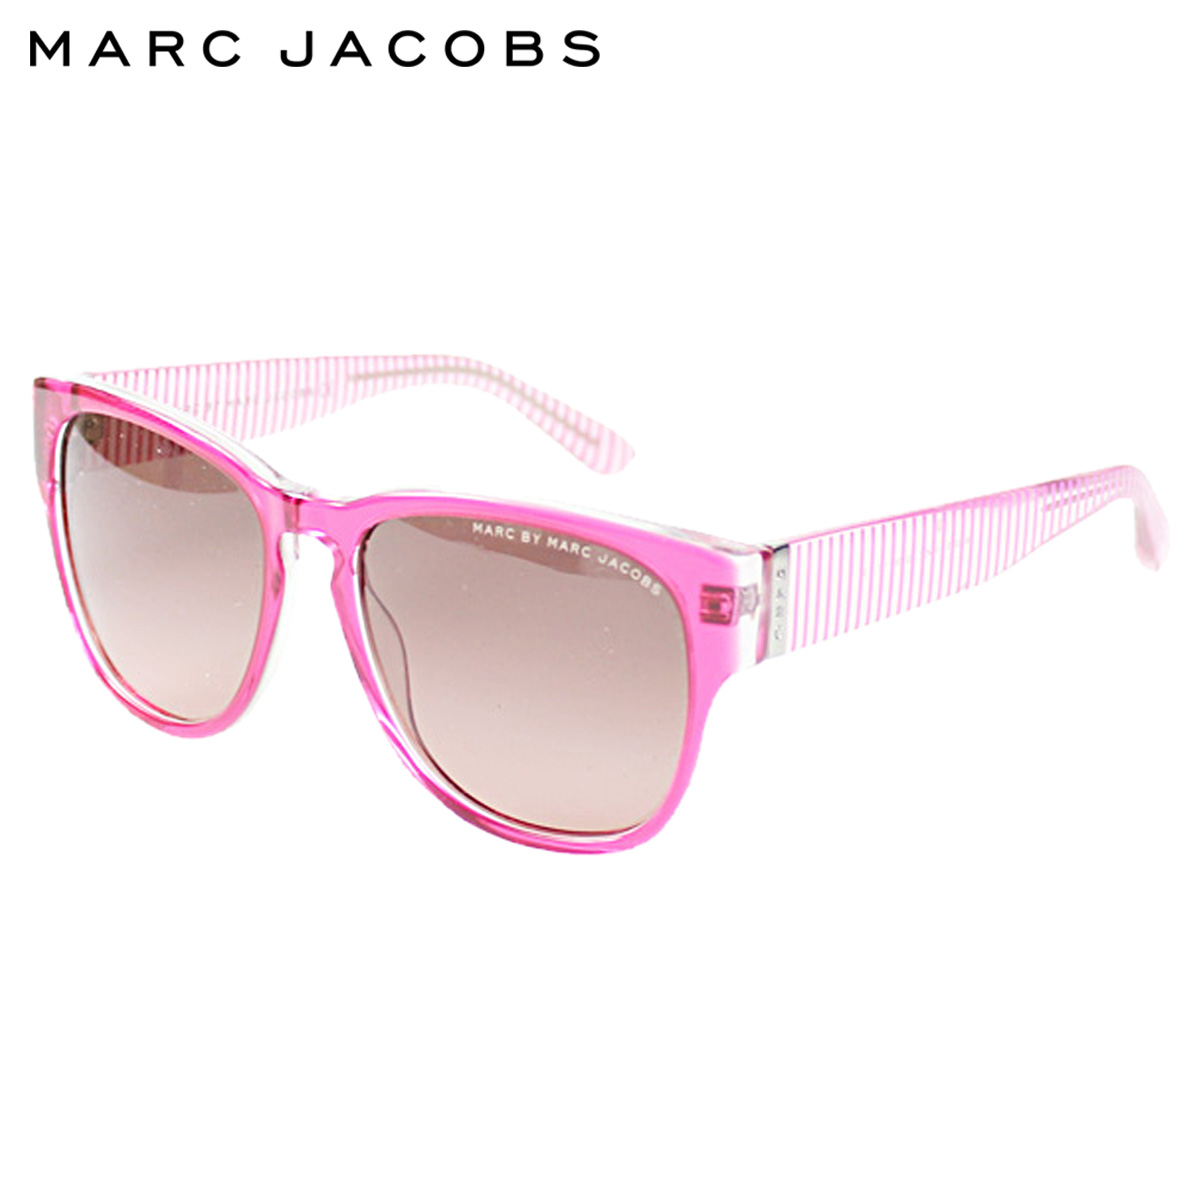 MARC BY MARC JACOBS   ☆ sunglasses ☆ CLEAR FRAME SUNGLASSES STYLE   MMJ230 S. PINK   pink 8b221bce4